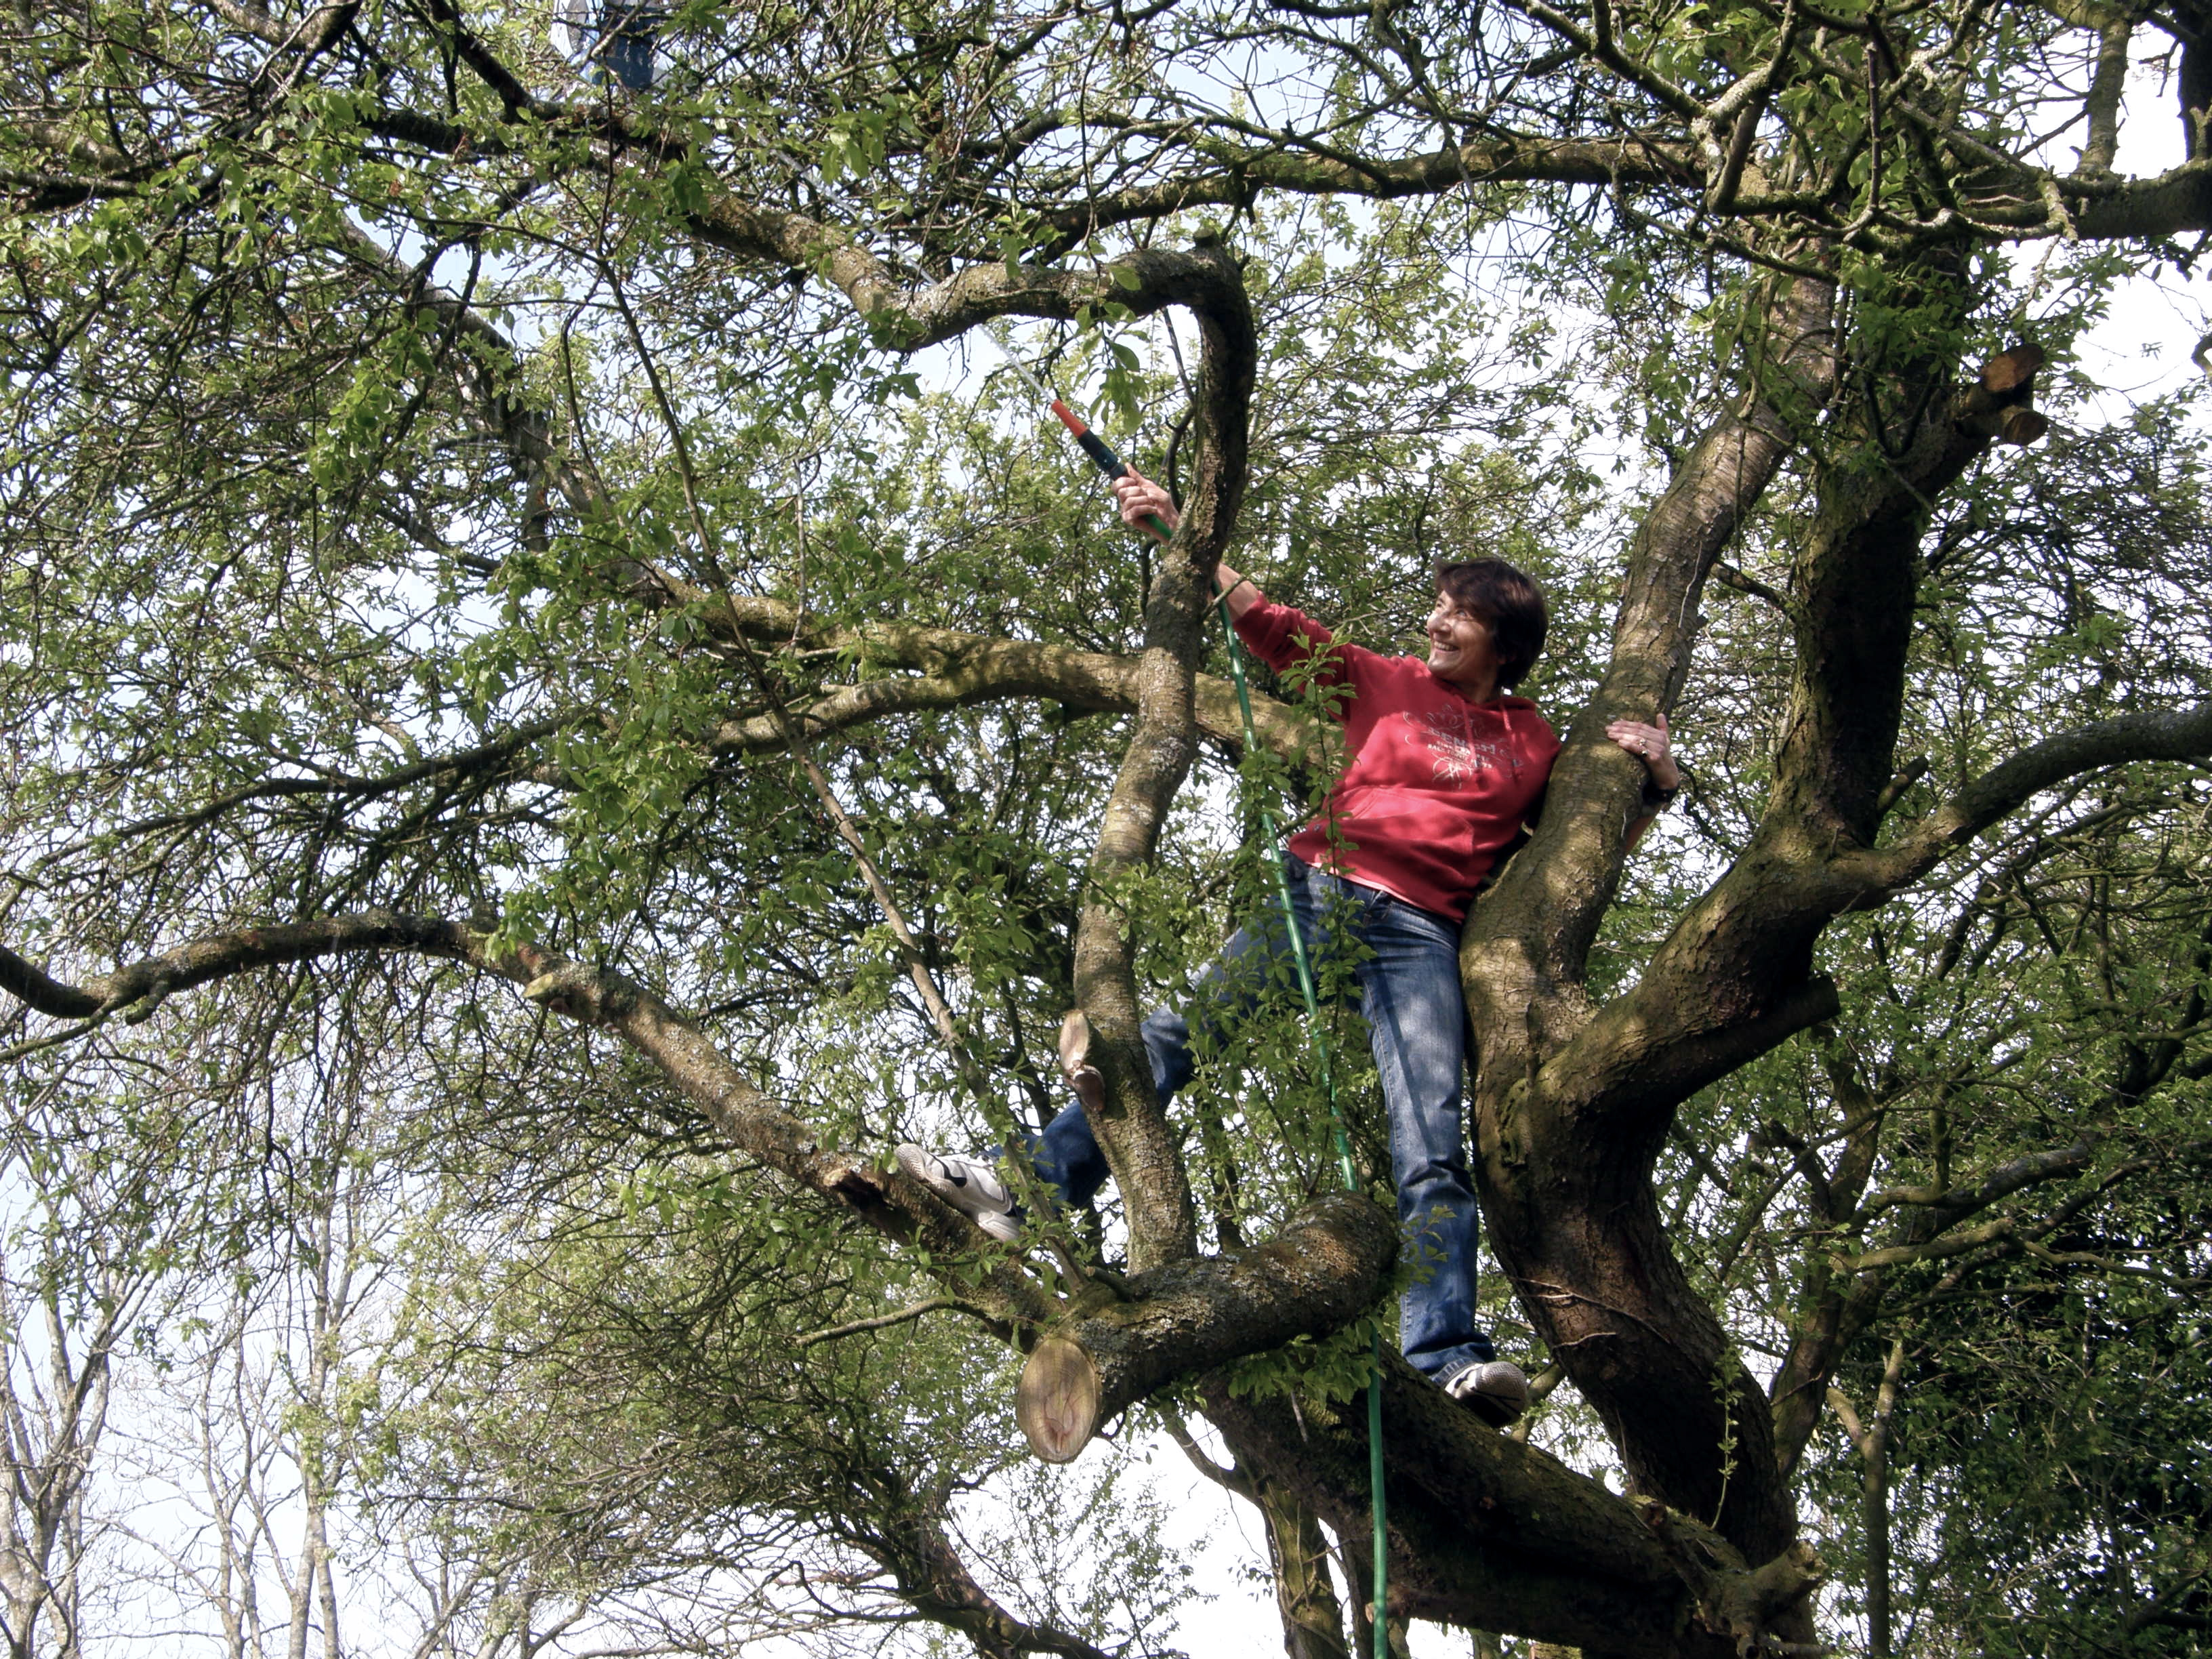 It's my mother. Up a tree - even though she's a woman!